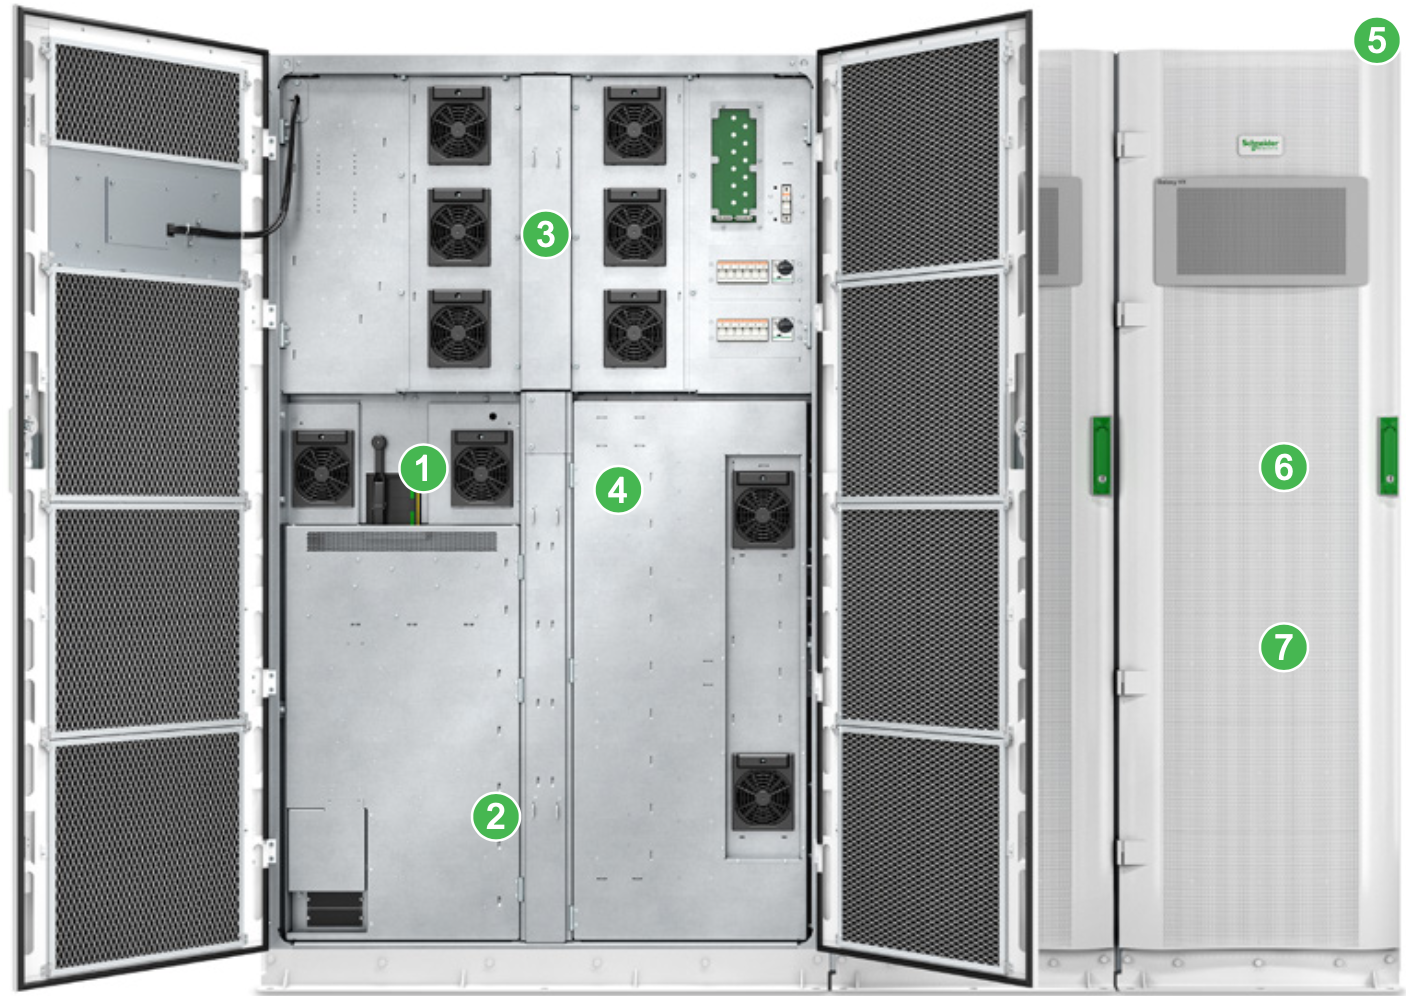 Inside the Galaxy VX redundant and scalable UPS